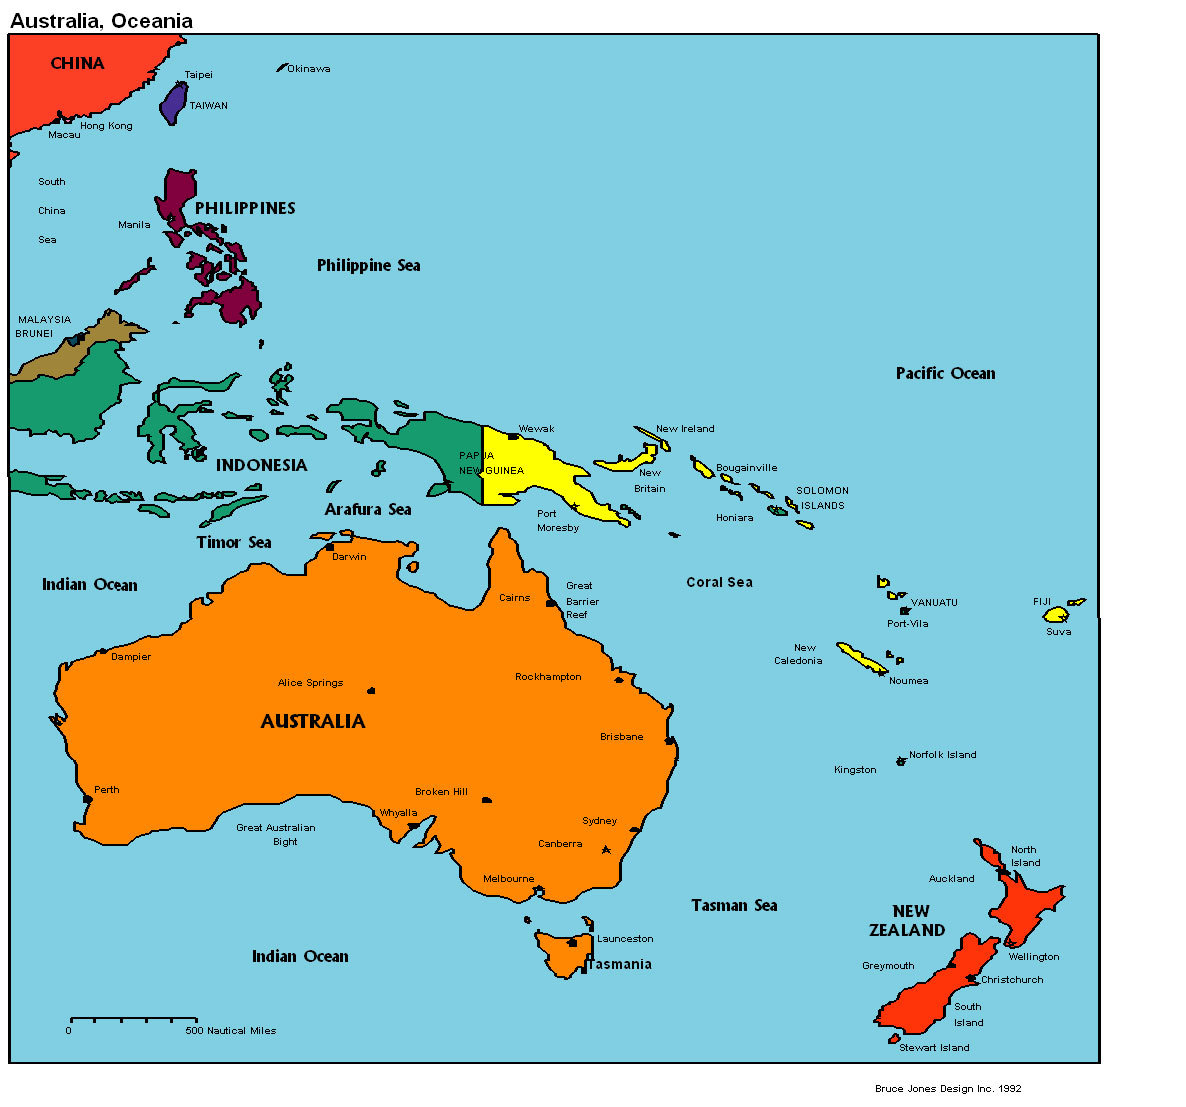 map of Australia and Oceania. Australia and Oceania political map